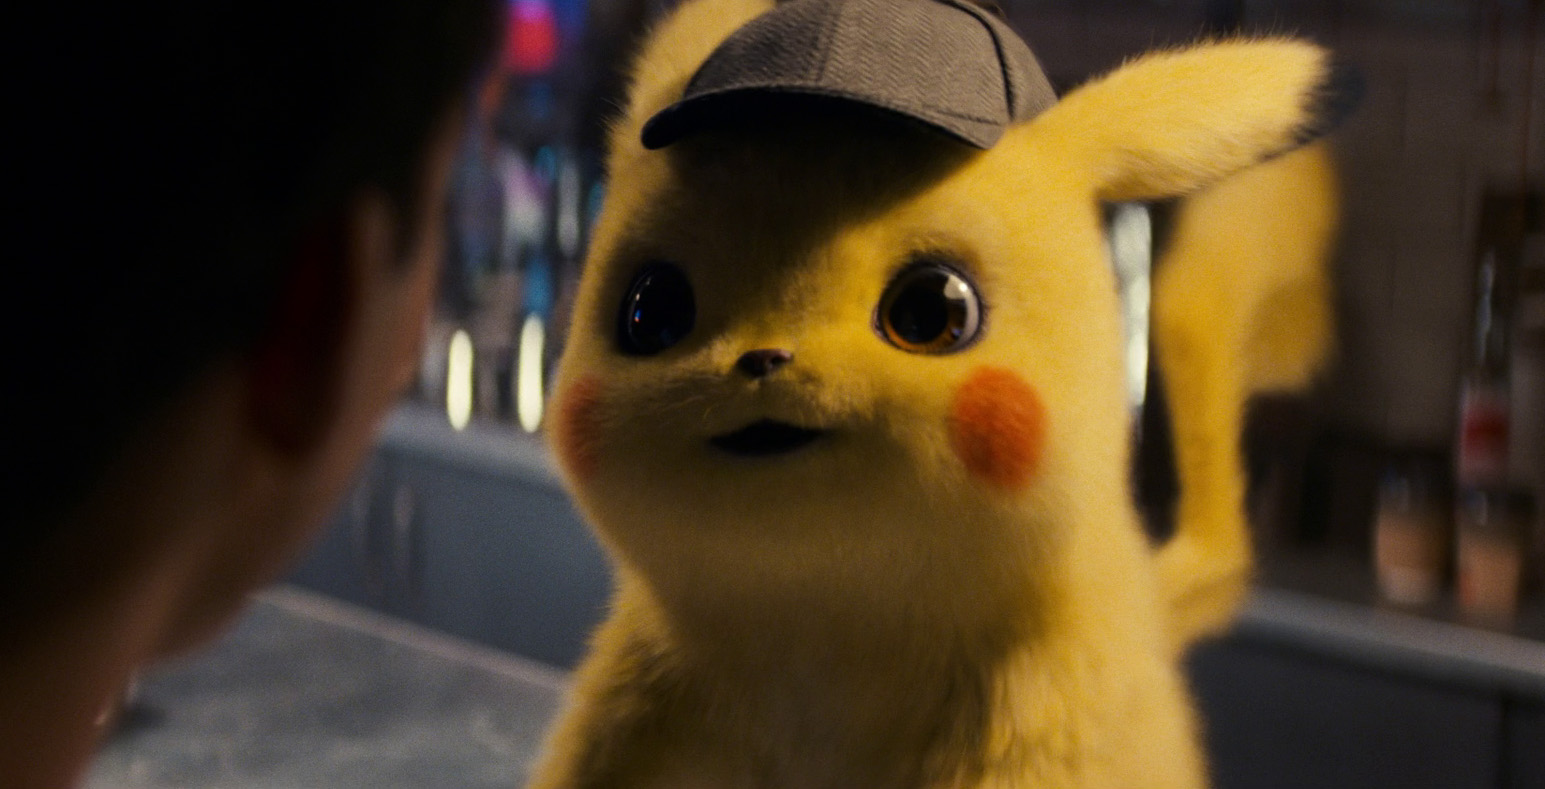 Pokemon Detective Pikachu sneak peek